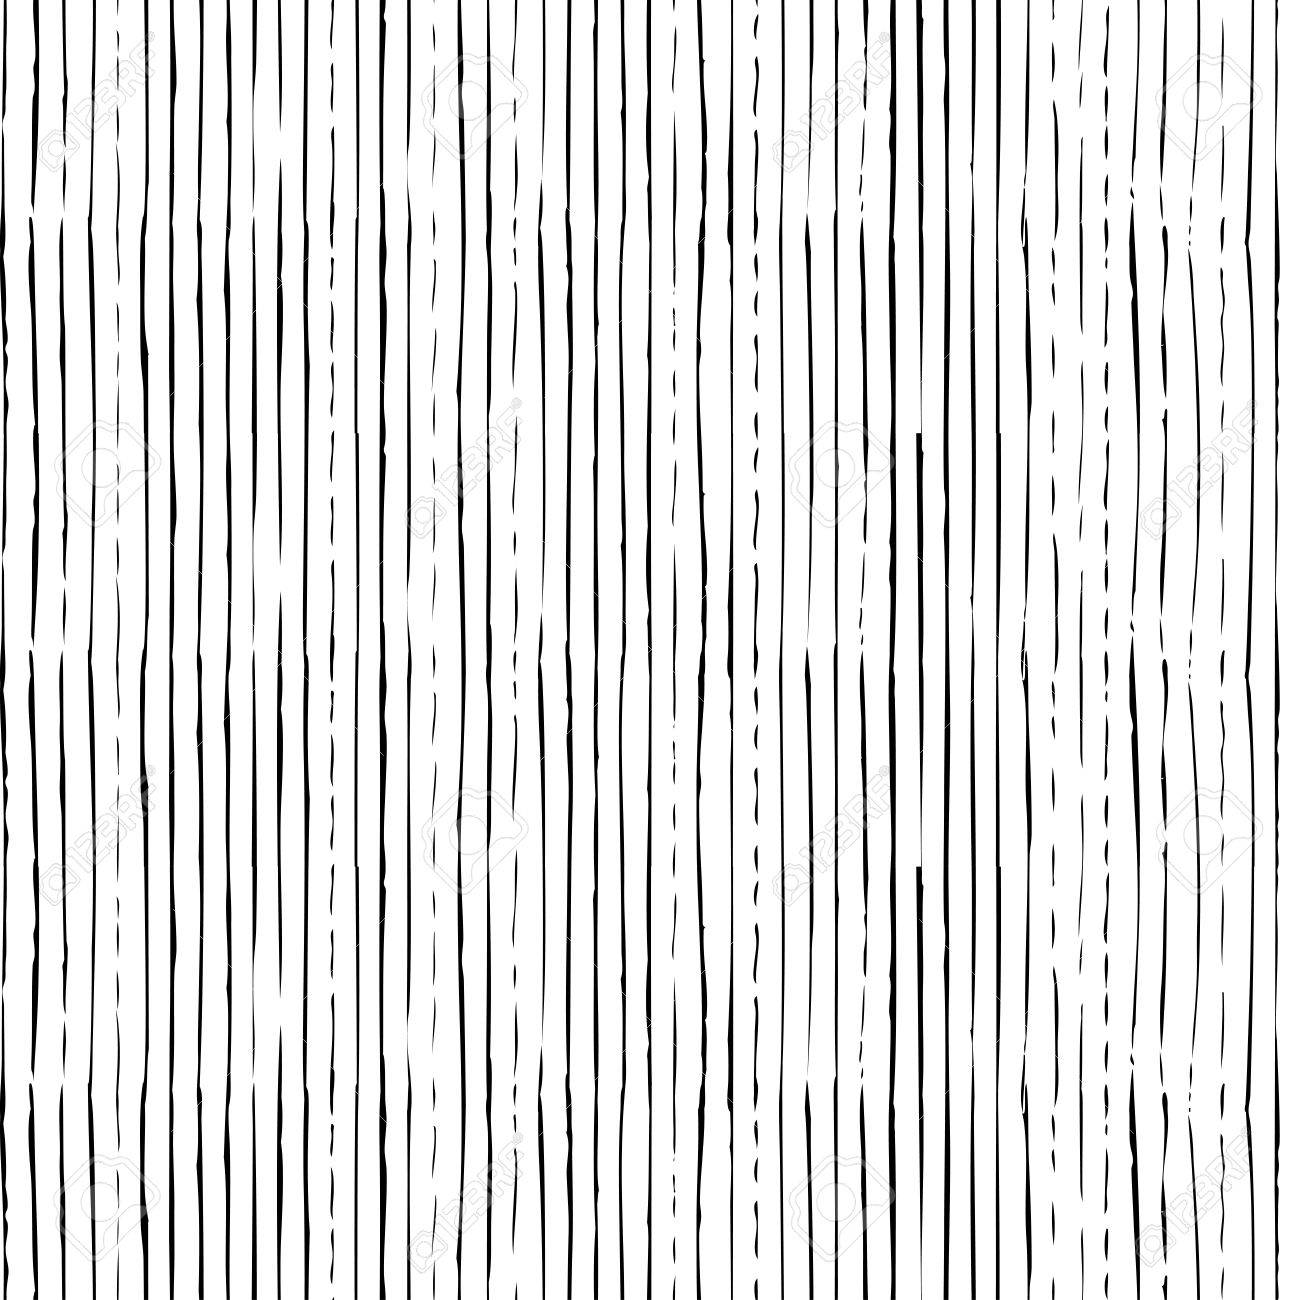 Vector seamless pattern of vertical thin brush strokes. Hand-drawn black brush flourishes on white background. Boundless background can be used for web page backgrounds, wallpapers and invitations. - 50177157